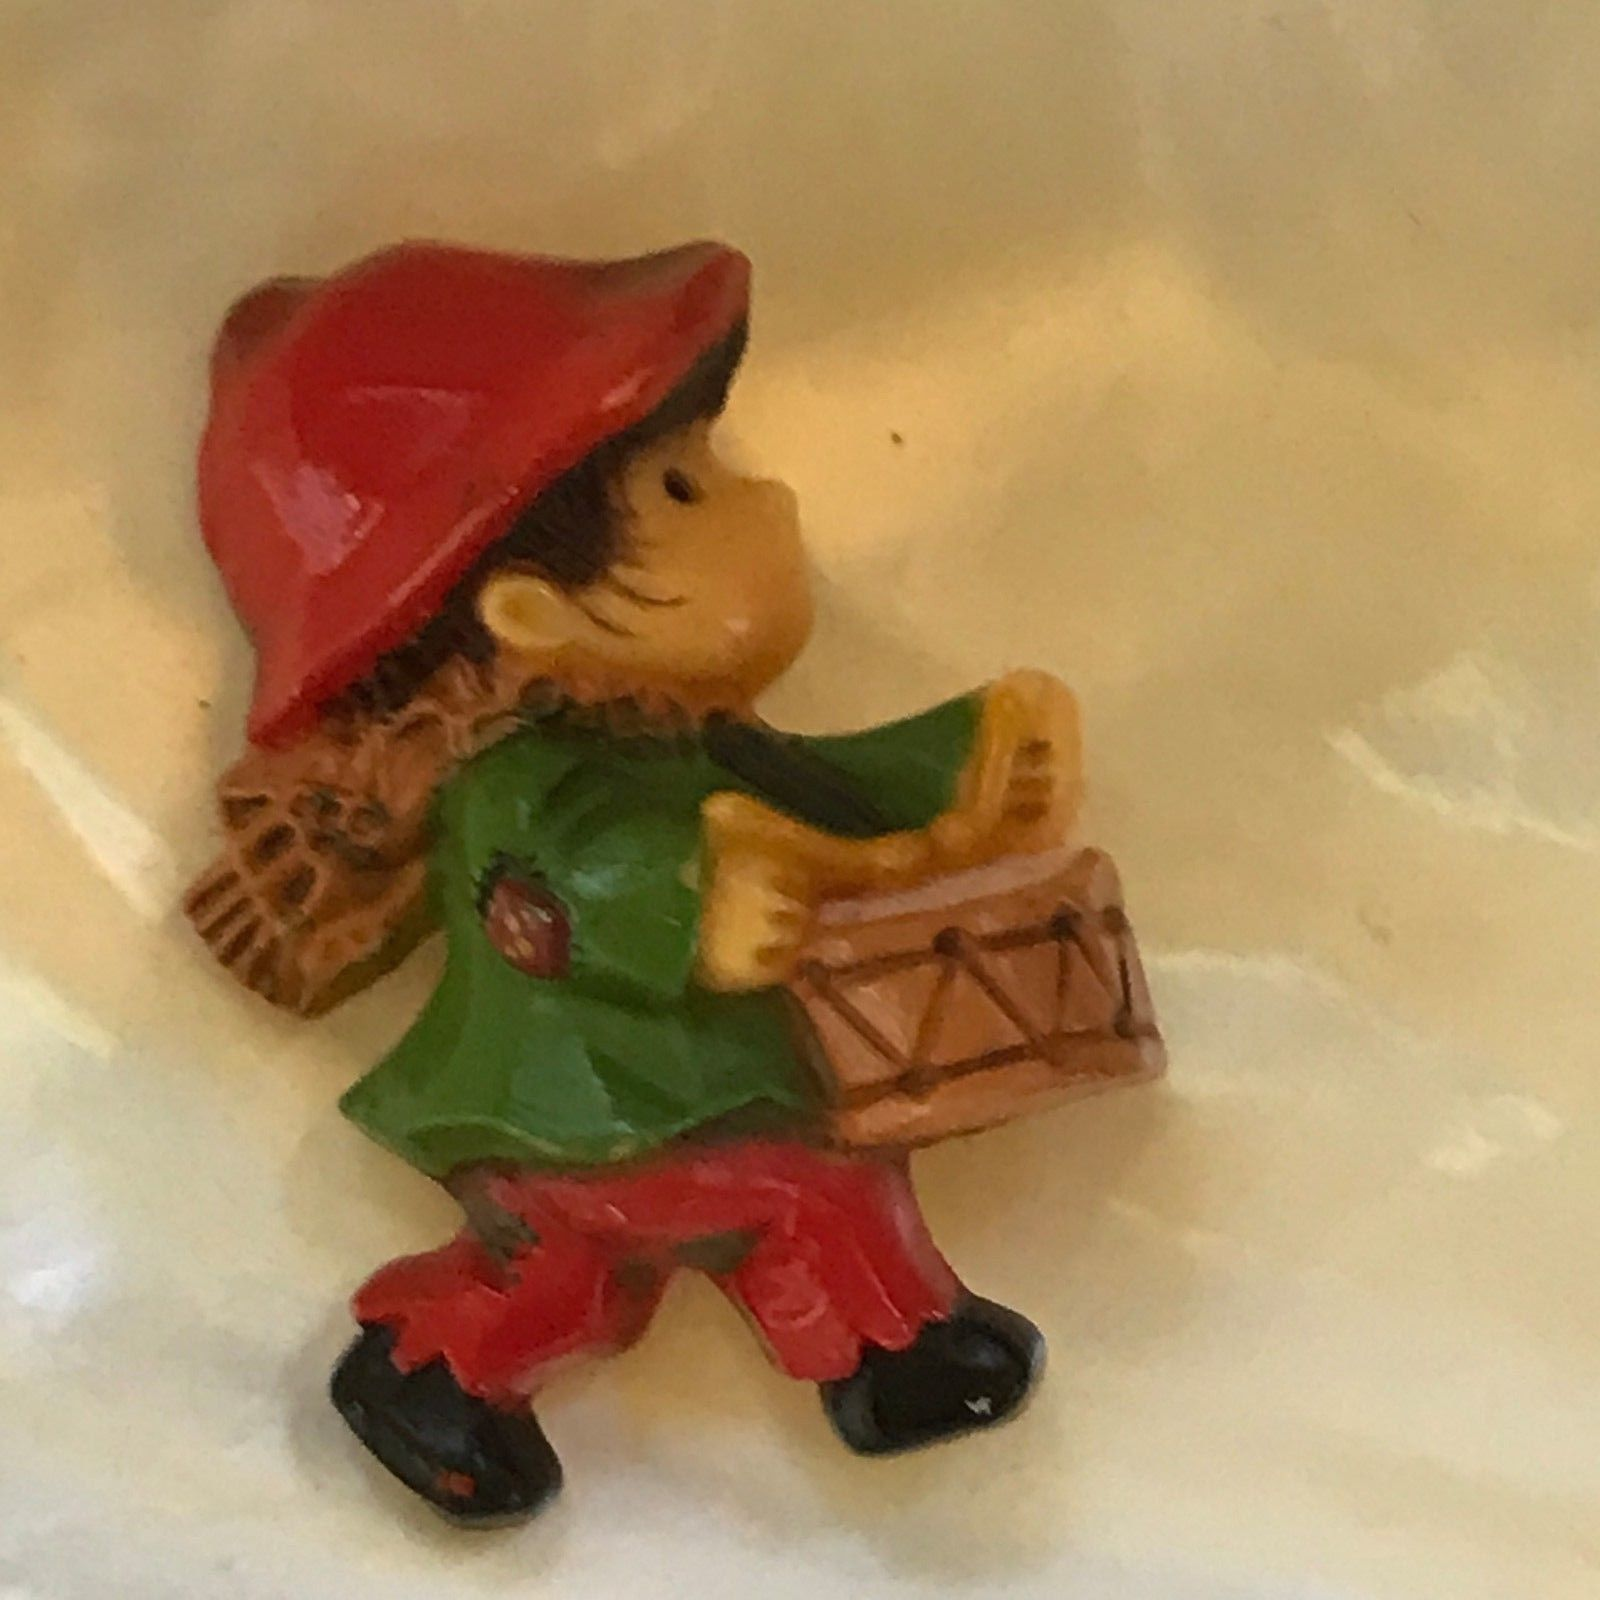 ce0d5ee5968fa S l1600. S l1600. Previous. Vintage Hallmark Cards Plastic Little Drummer  Boy Christmas Holiday Brooch Pin –